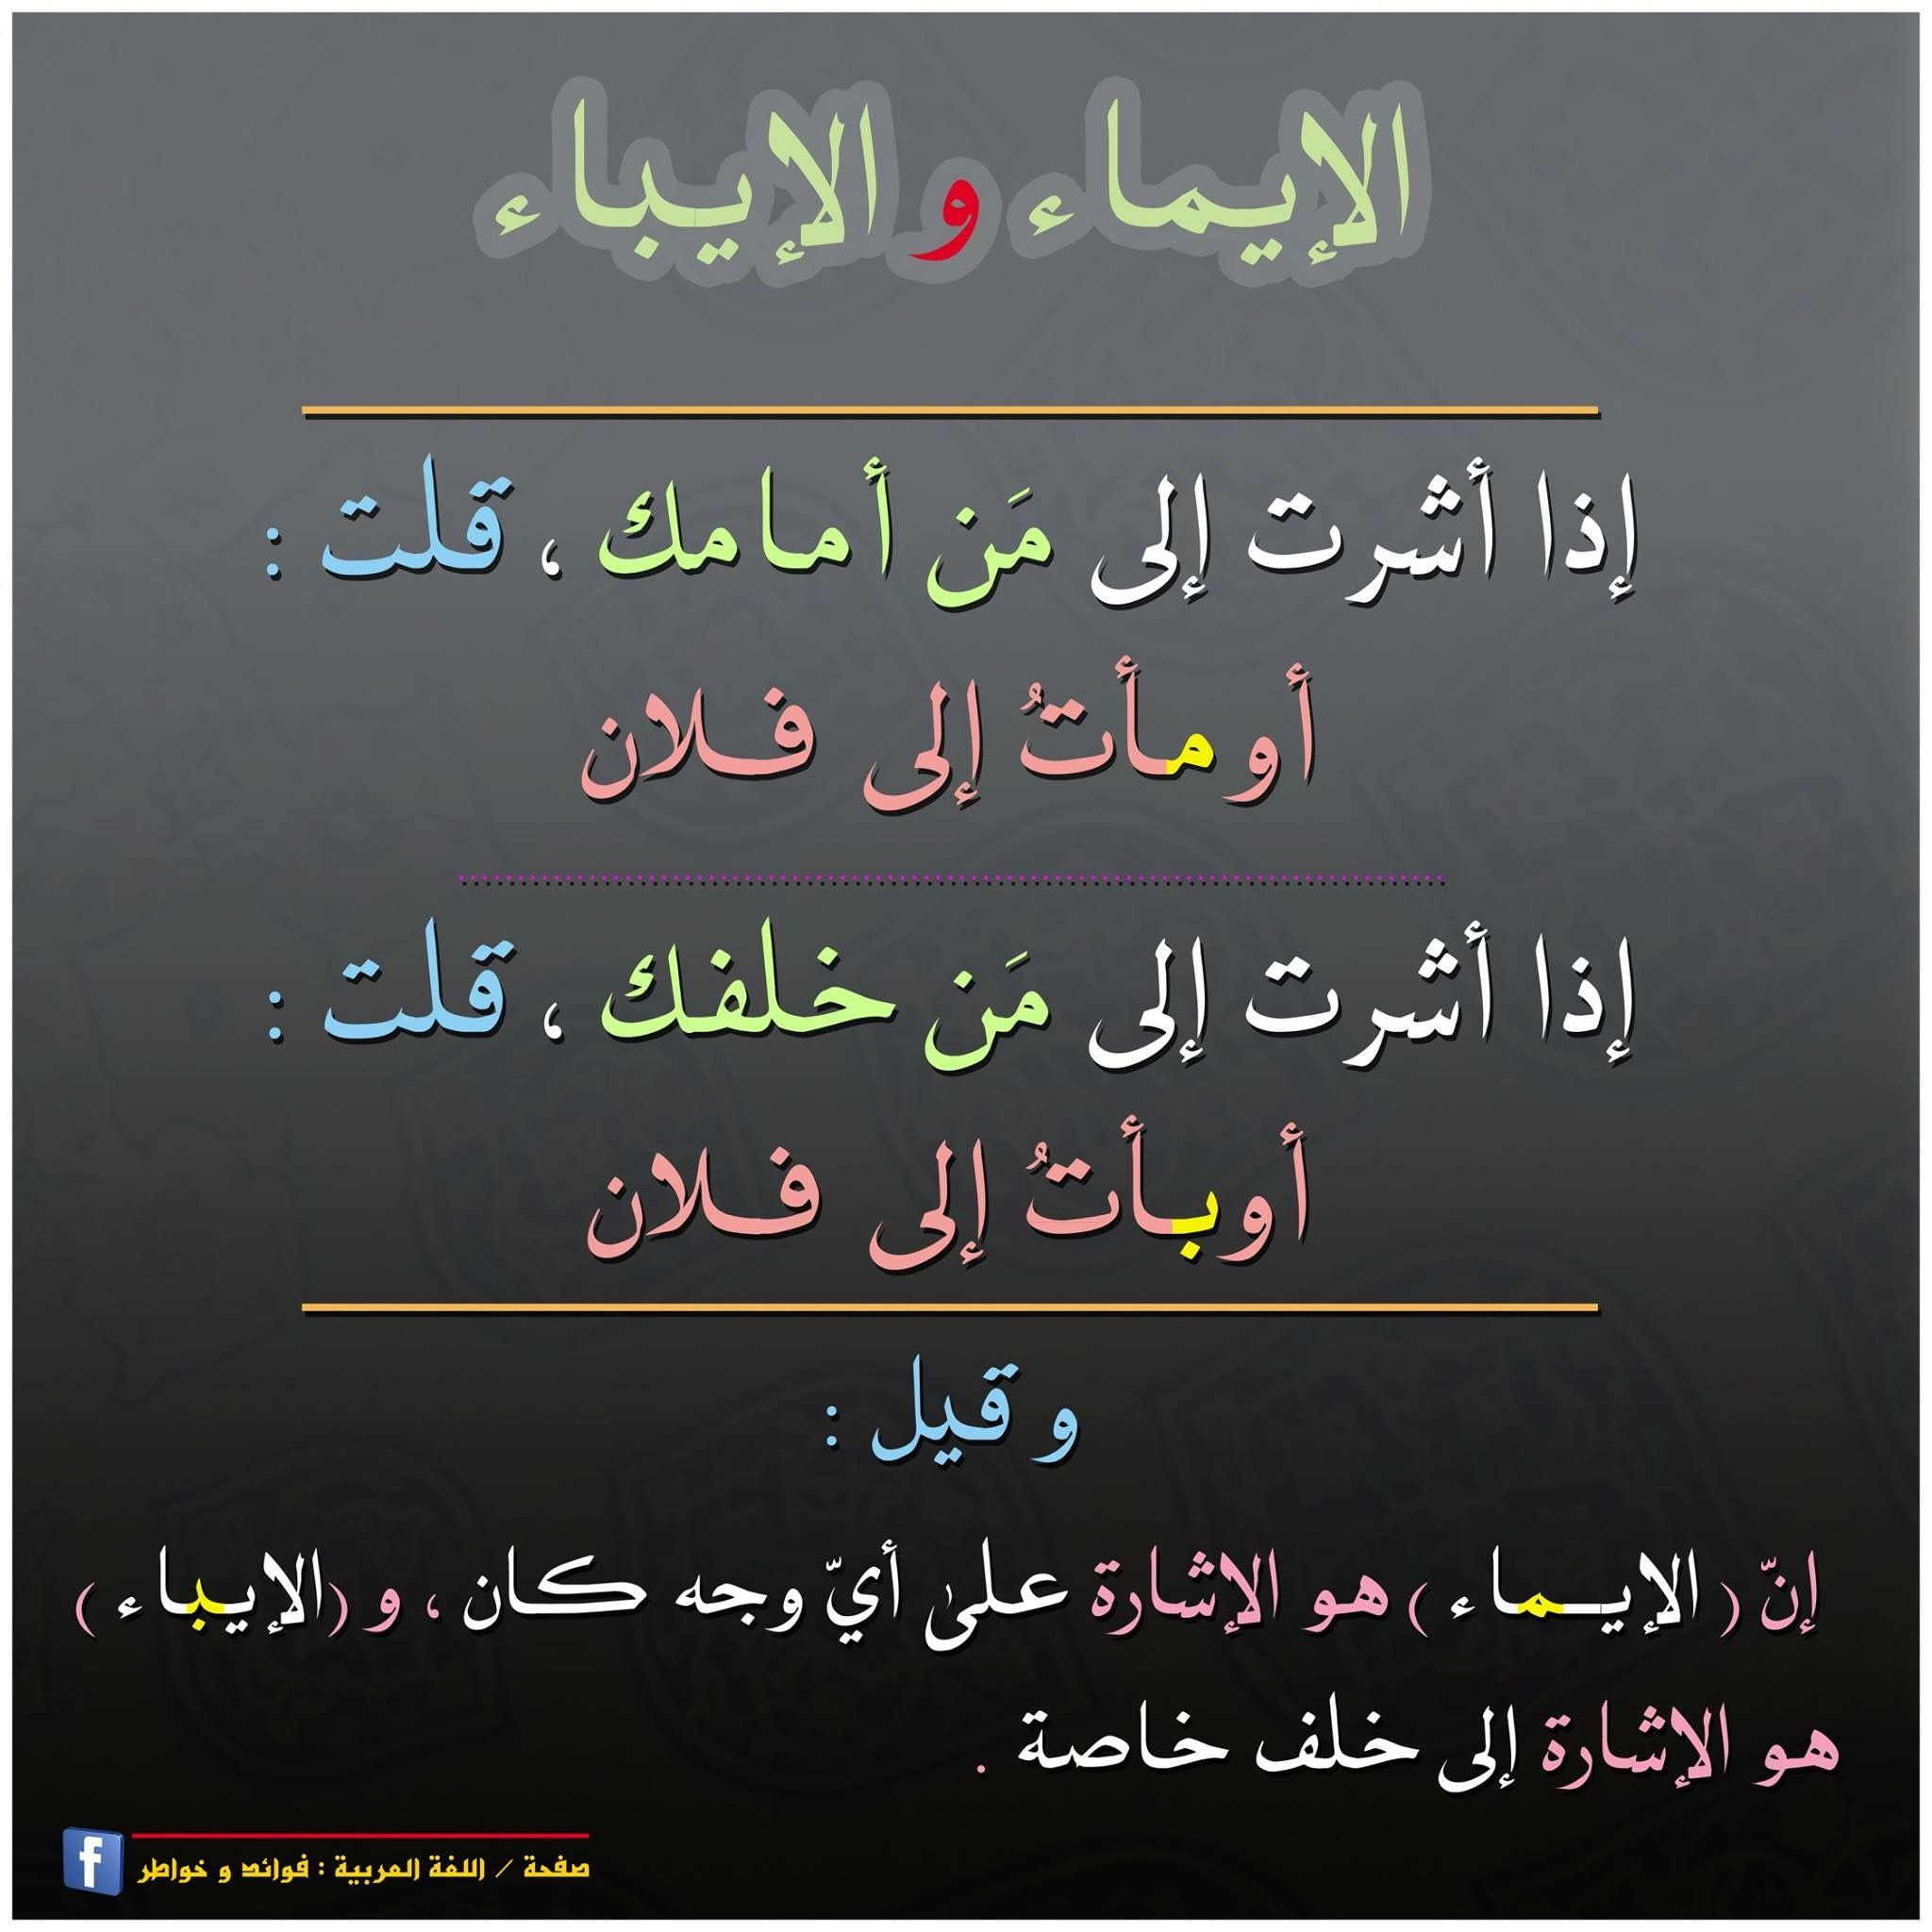 Pin By King O Solomon On منوعة عربية Beautiful Arabic Words Words Quotes